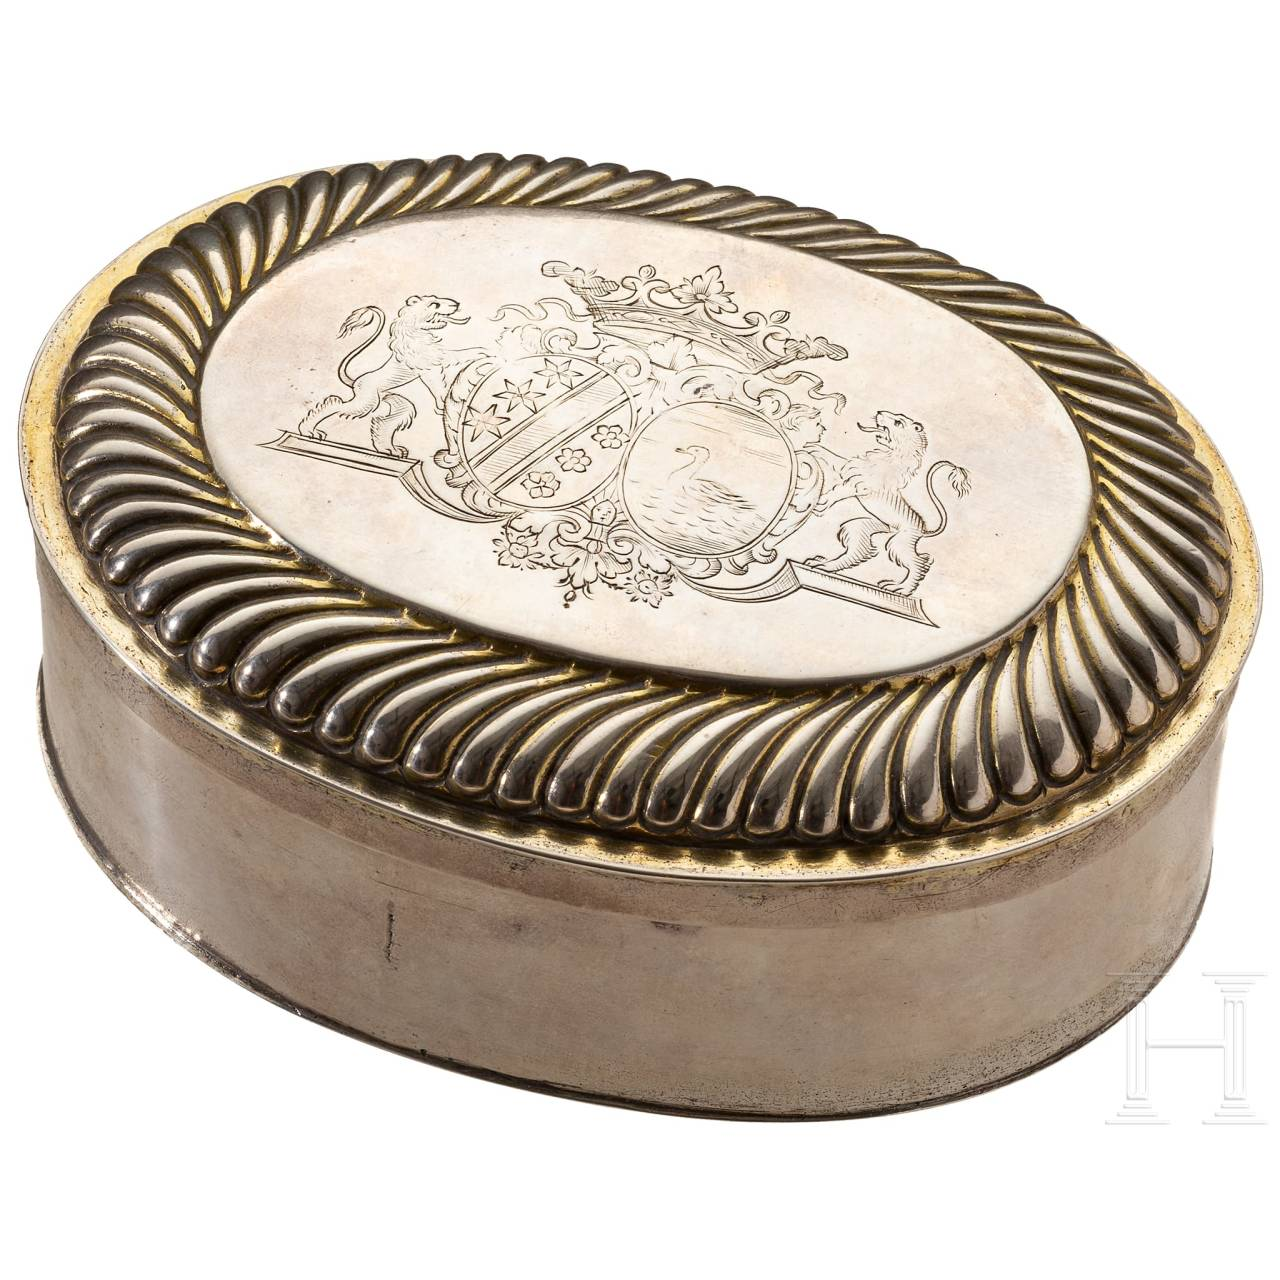 A silver box from a toiletry set, Augsburg, Michael Hafner, 1695-1700